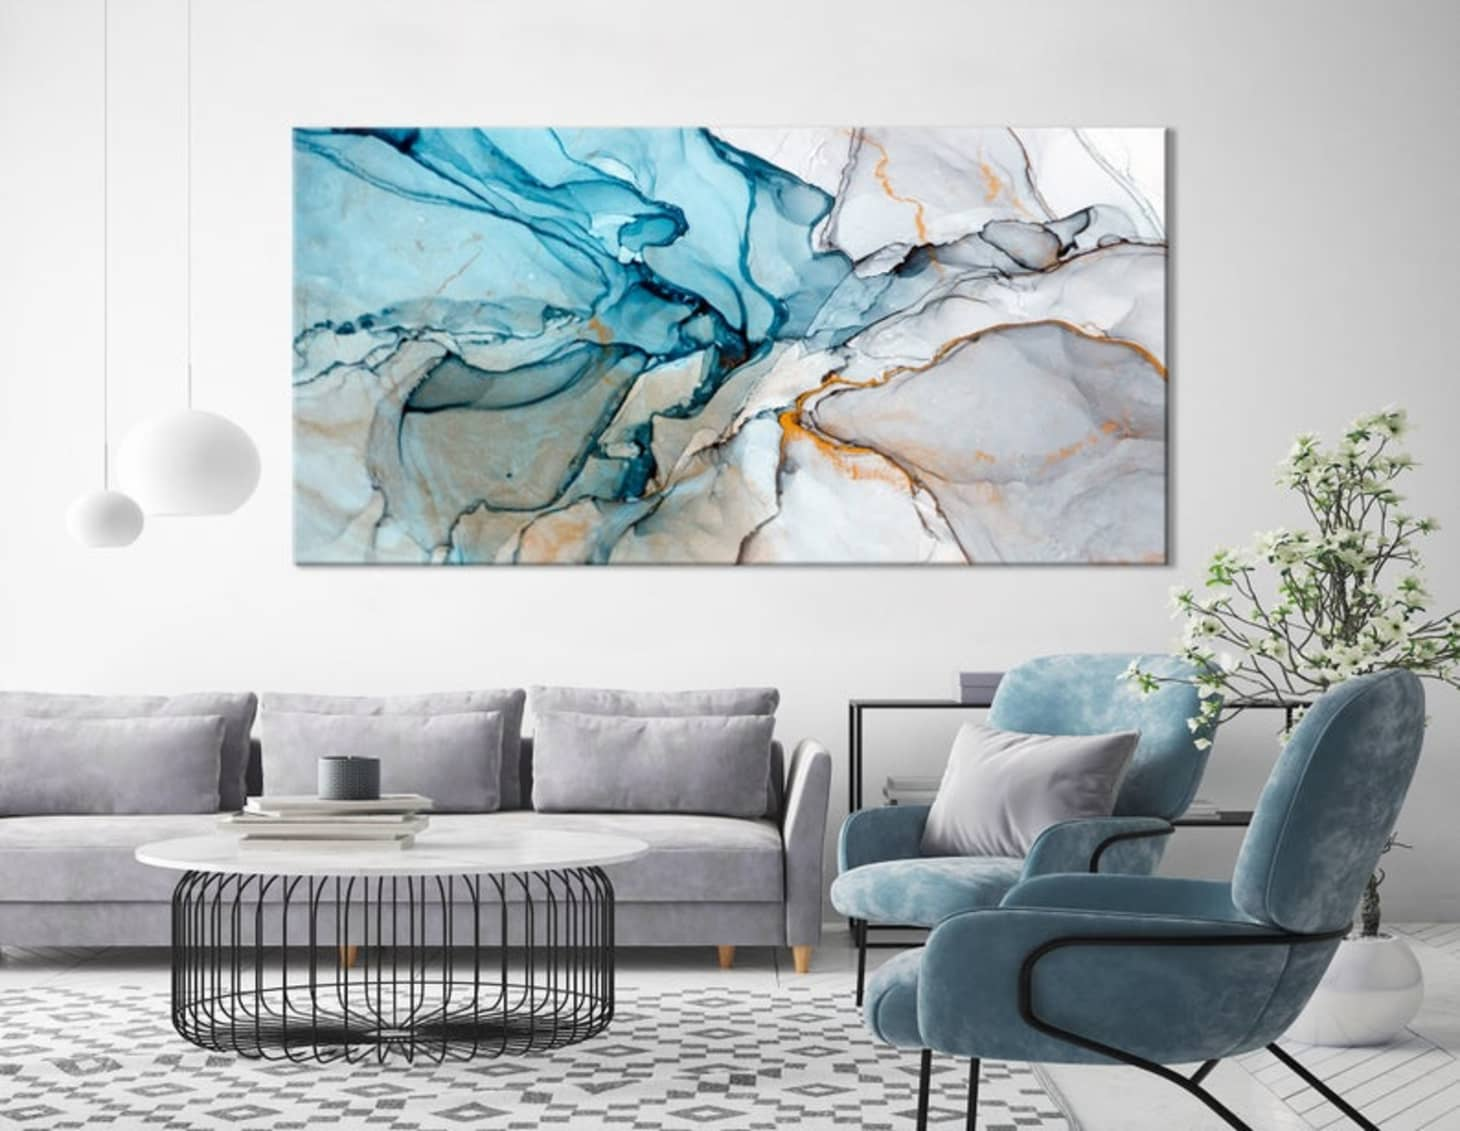 Oversized Art Prints - The Best Places to Buy Big Art ...